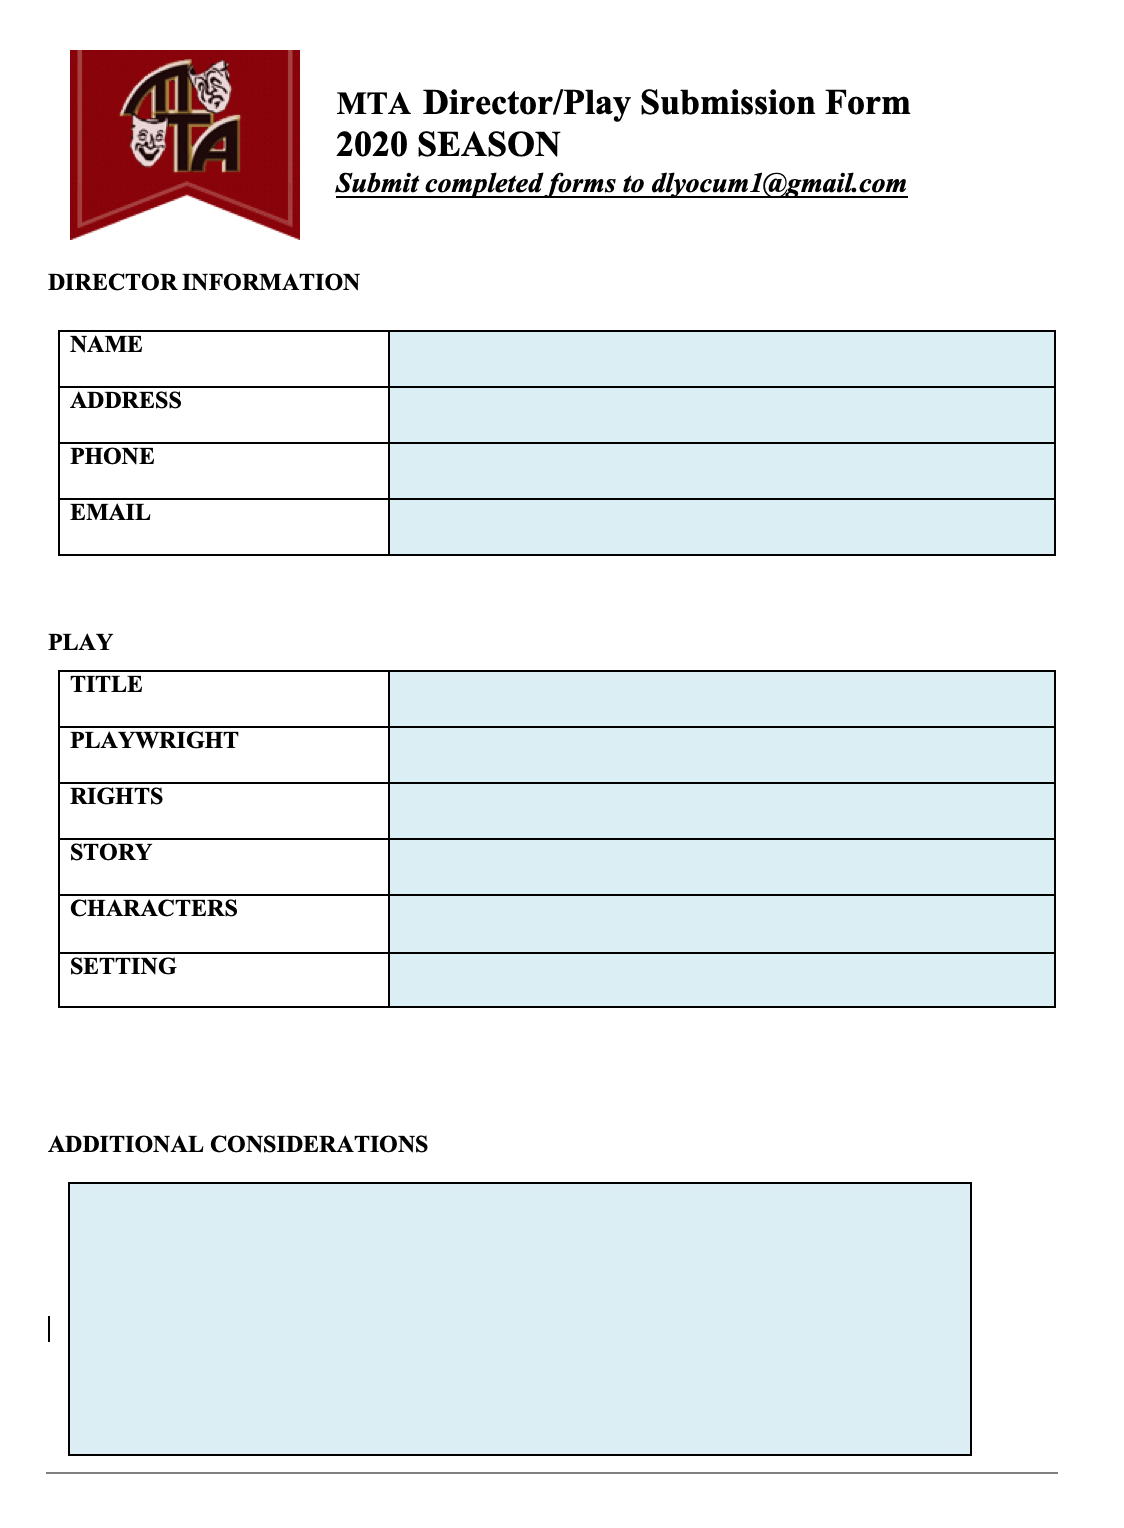 Director/Play proposal form